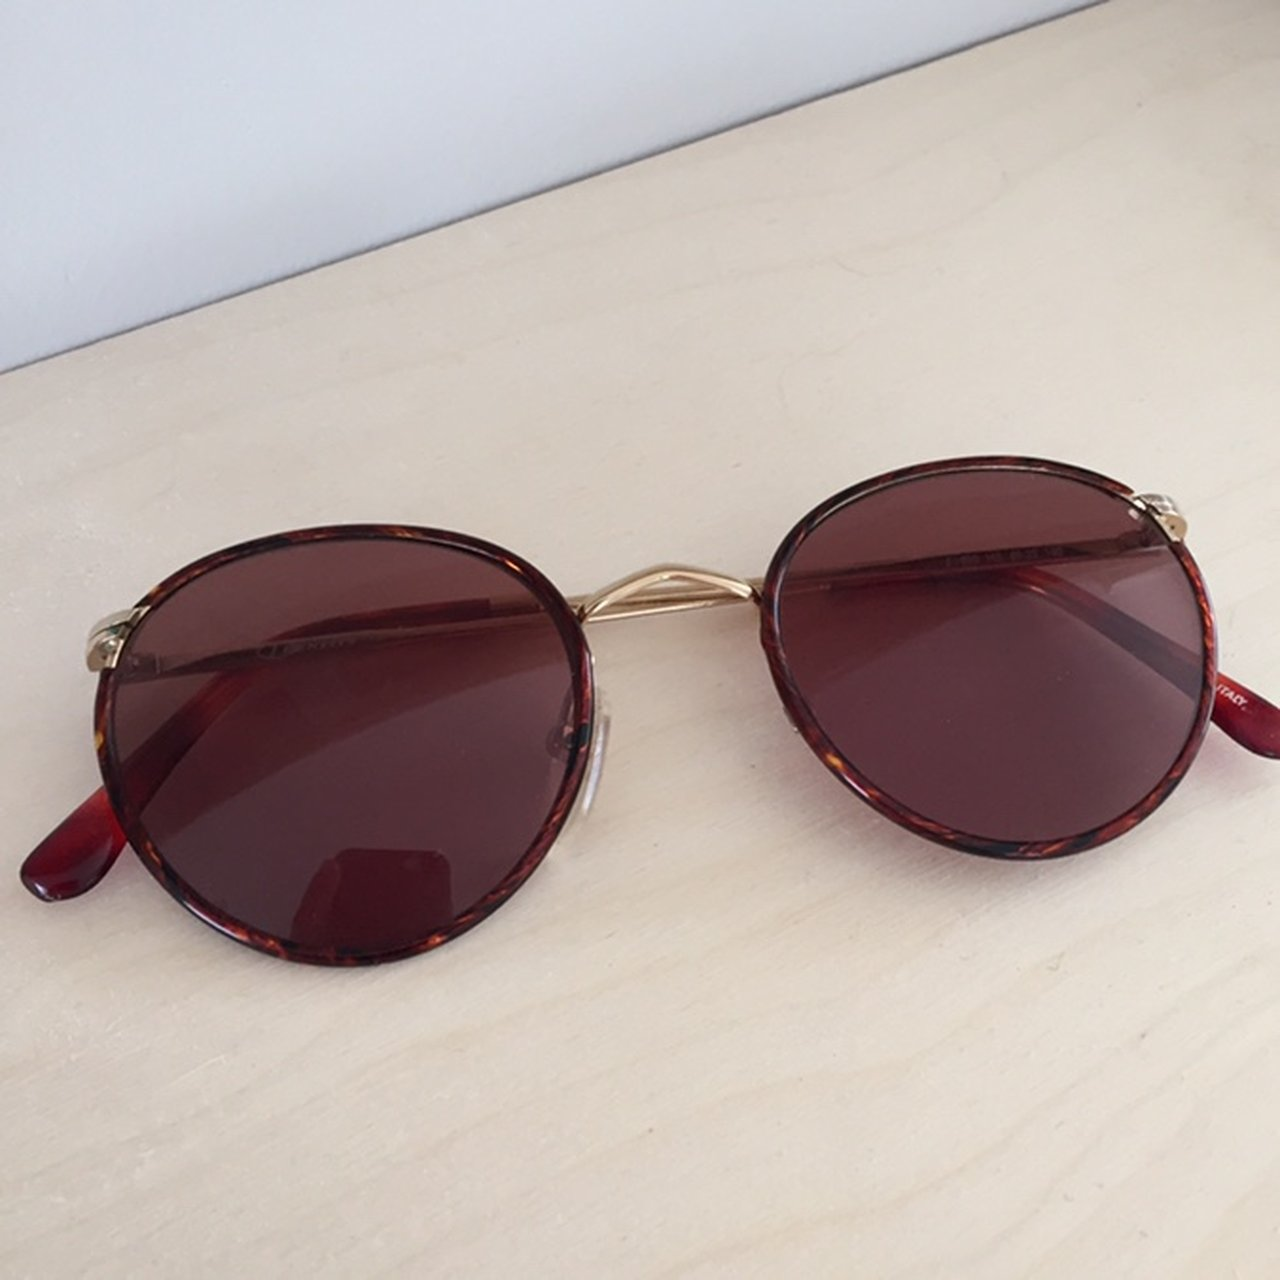 1e9be2d2c9 Vintage sunglasses bought from a market! The only fault is - Depop